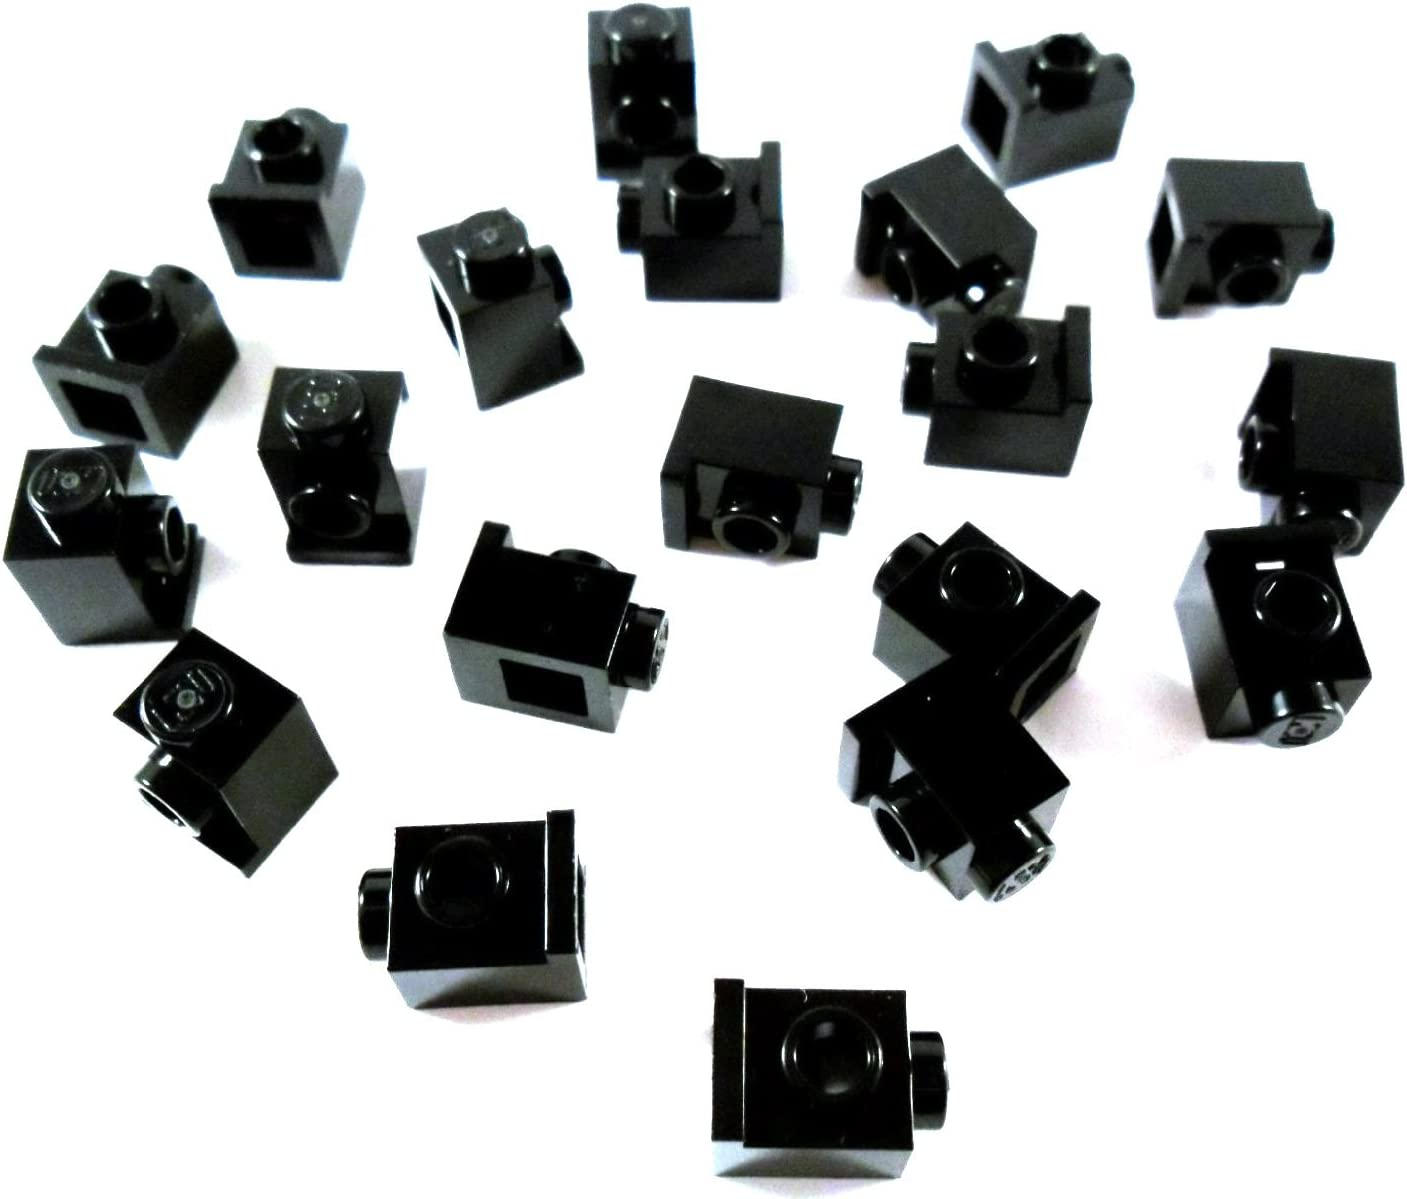 LEGO BRICK 1x1 Black with HEADLIGHT and SLOT (lot of 20 loose parts)